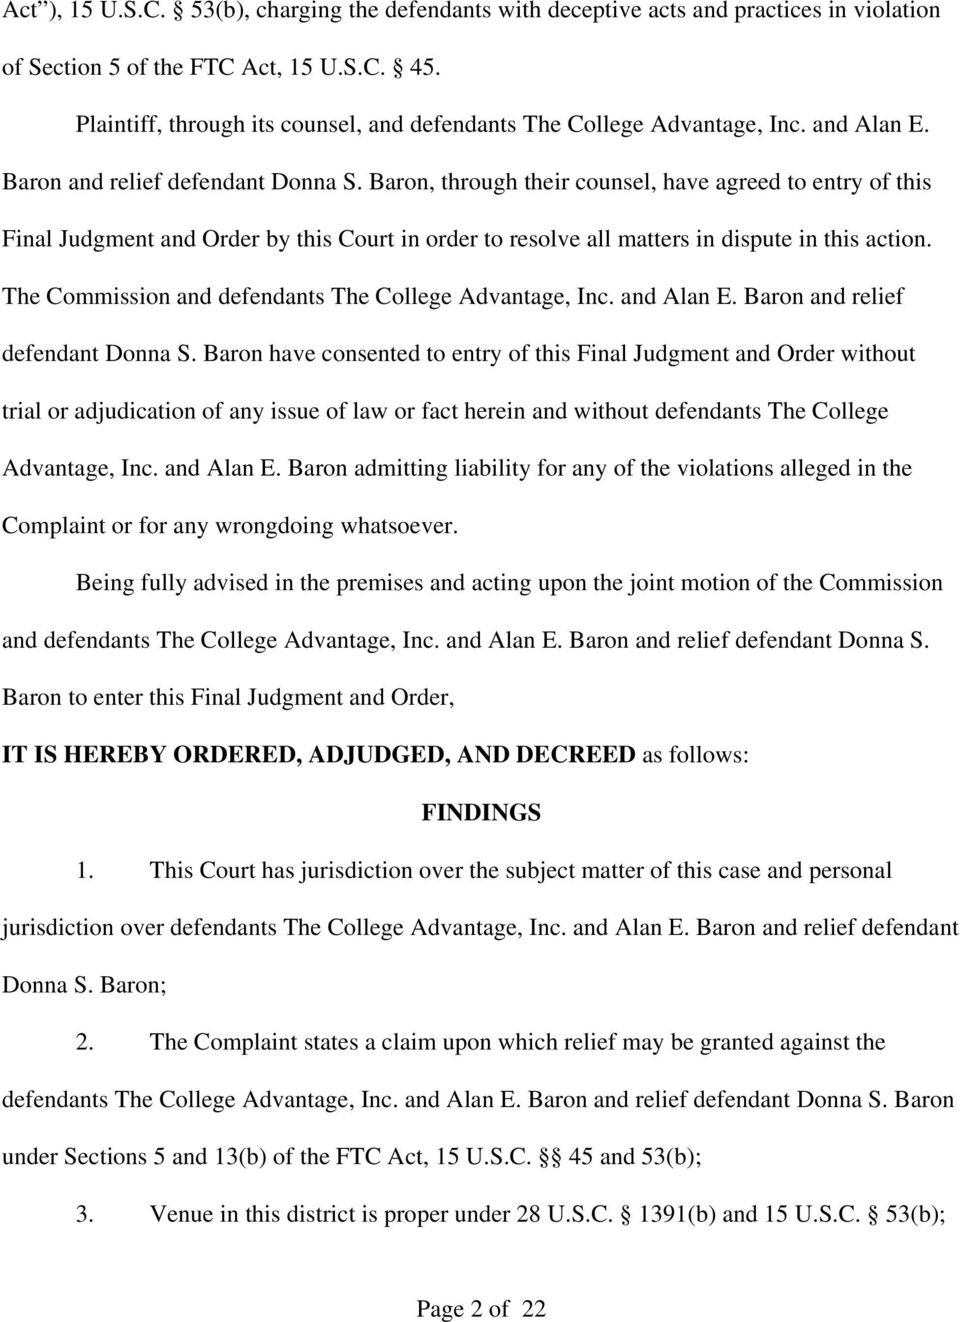 Baron, through their counsel, have agreed to entry of this Final Judgment and Order by this Court in order to resolve all matters in dispute in this action.